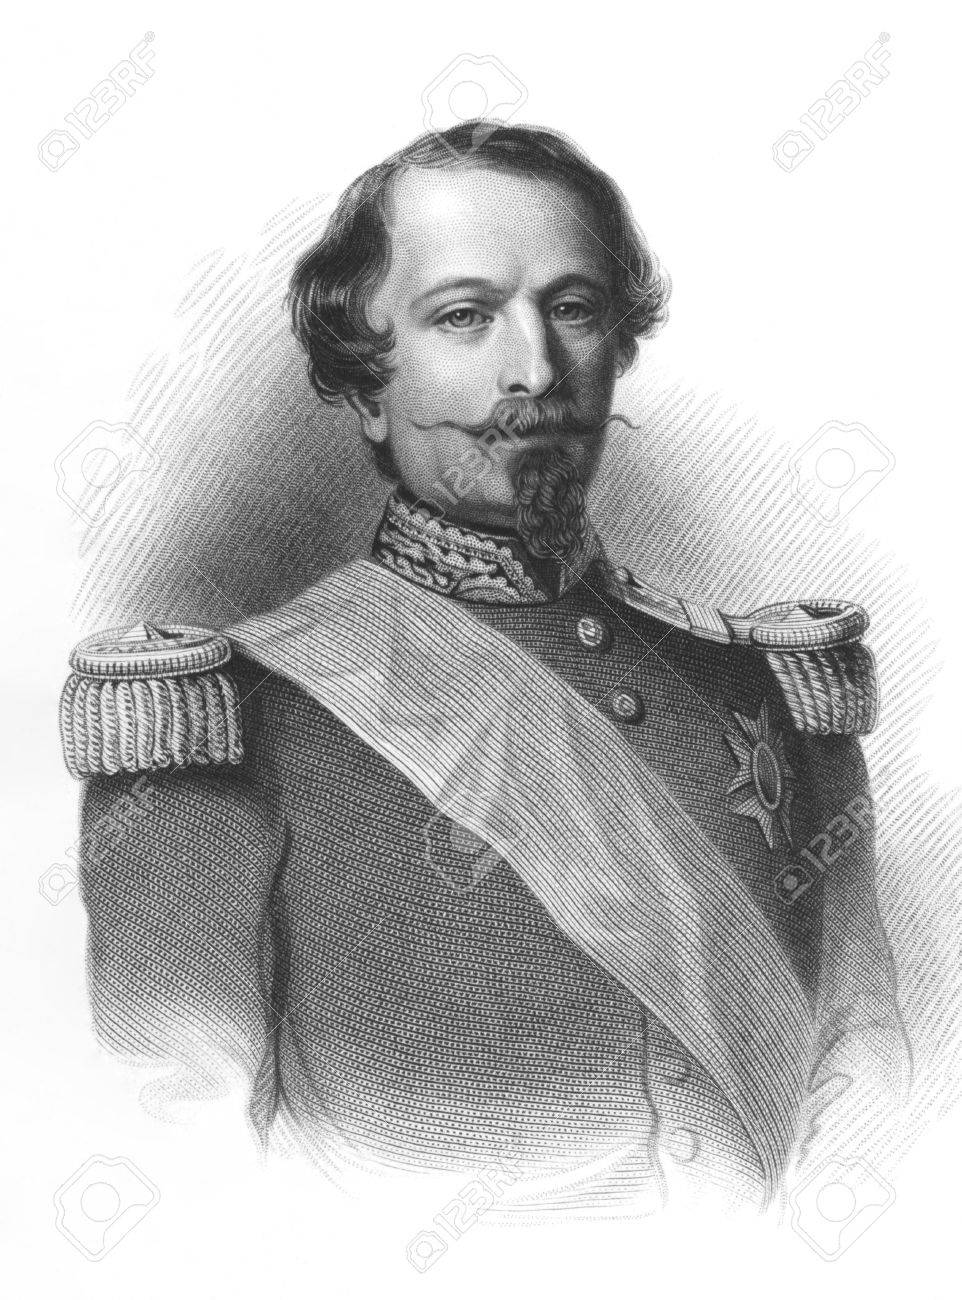 Napoleon III aka Louis Napoleon Bonaparte (1808-1873) on engraving from the 1800s. President of the French Second Republic and ruler of the Second French Empire. Nephew of Napoleon I. Published by Virtue in London. Stock Photo - 8509975